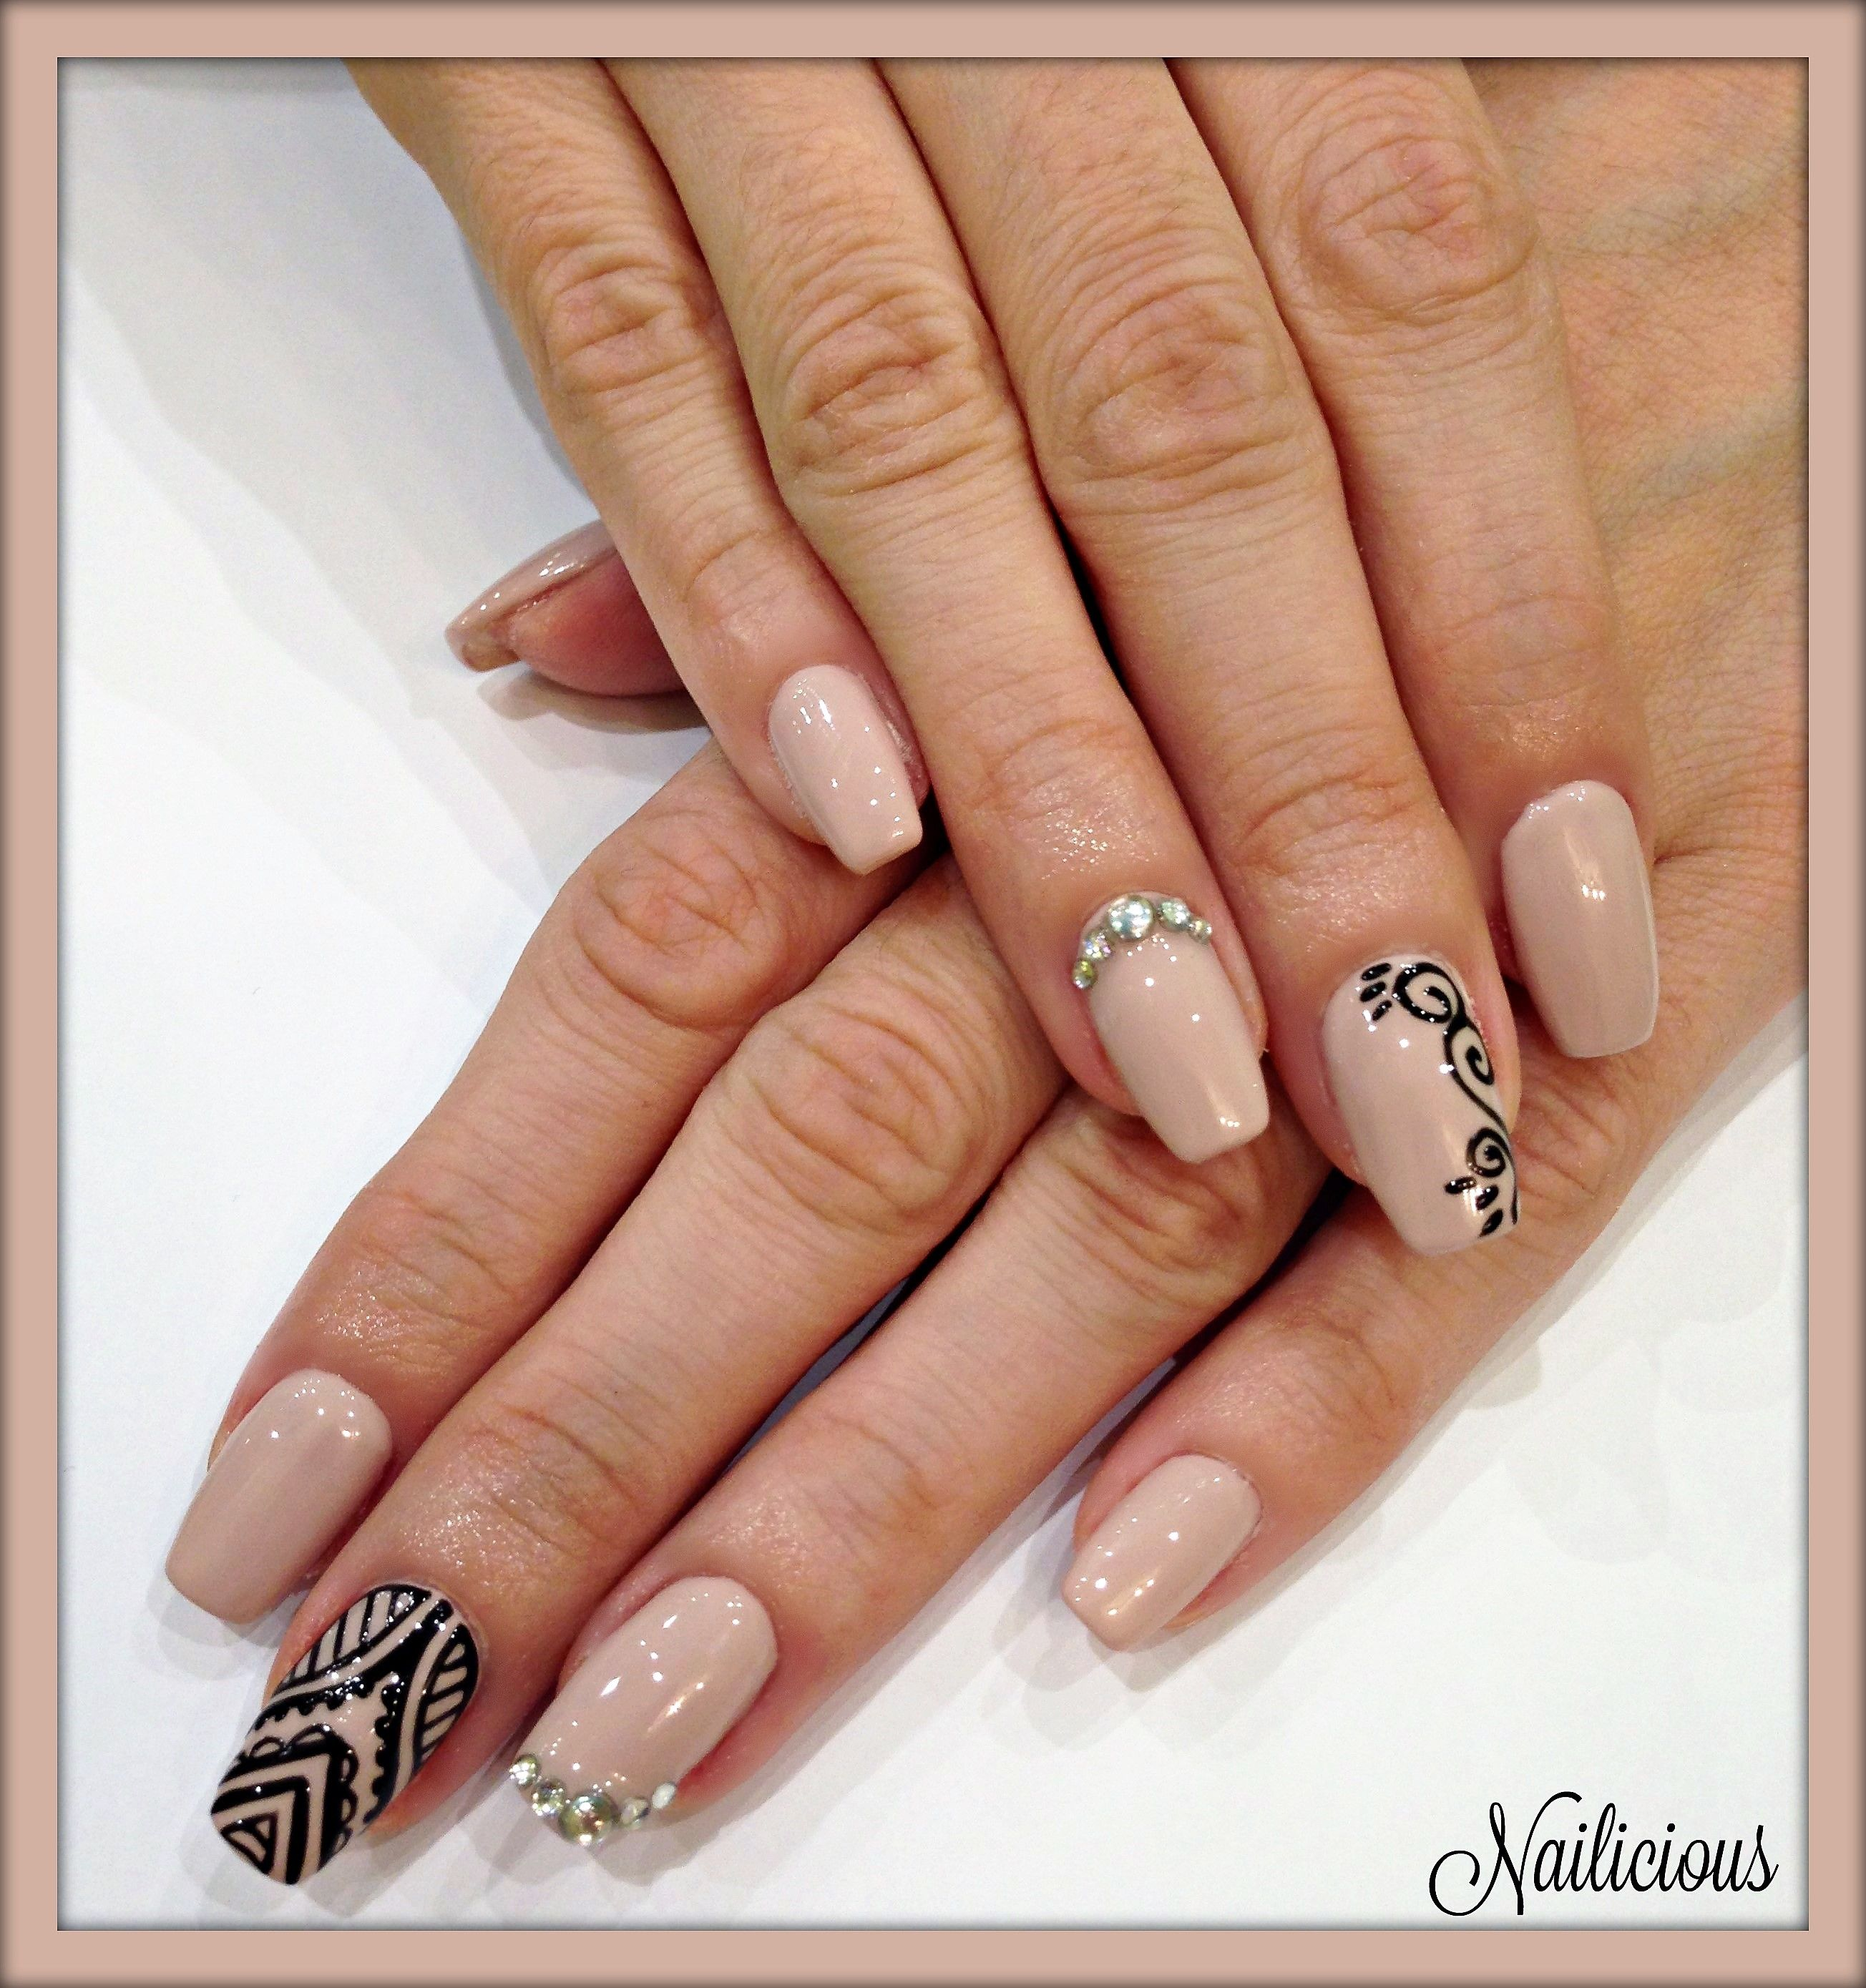 Nude nails with hand made nail art & strass | NAILICIOUS My Beauty ...